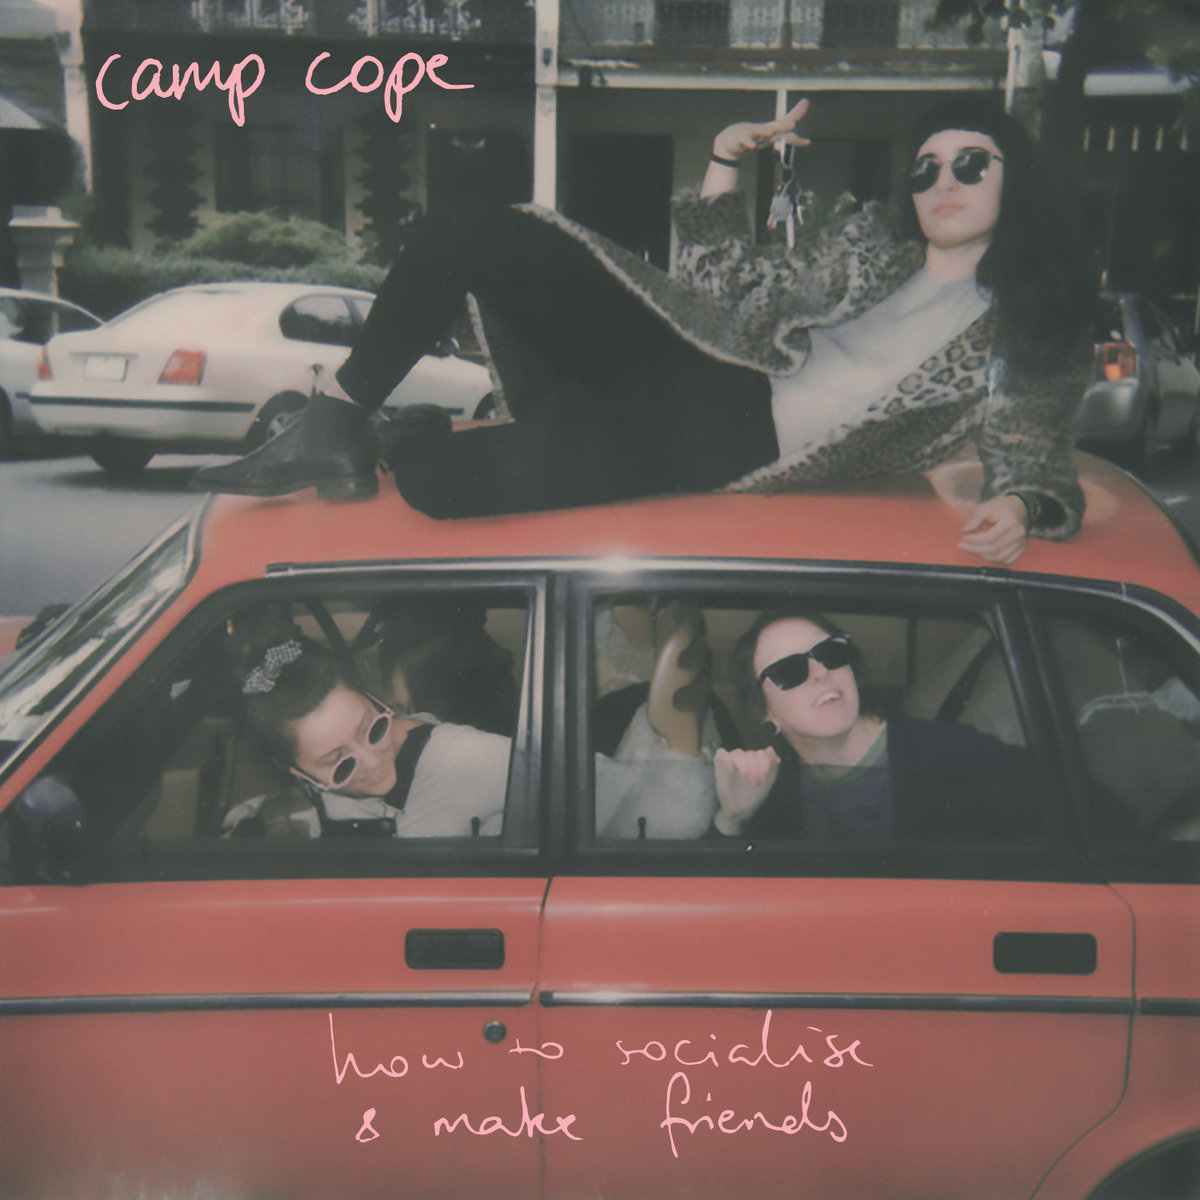 Image result for camp cope how to socialize and make friends